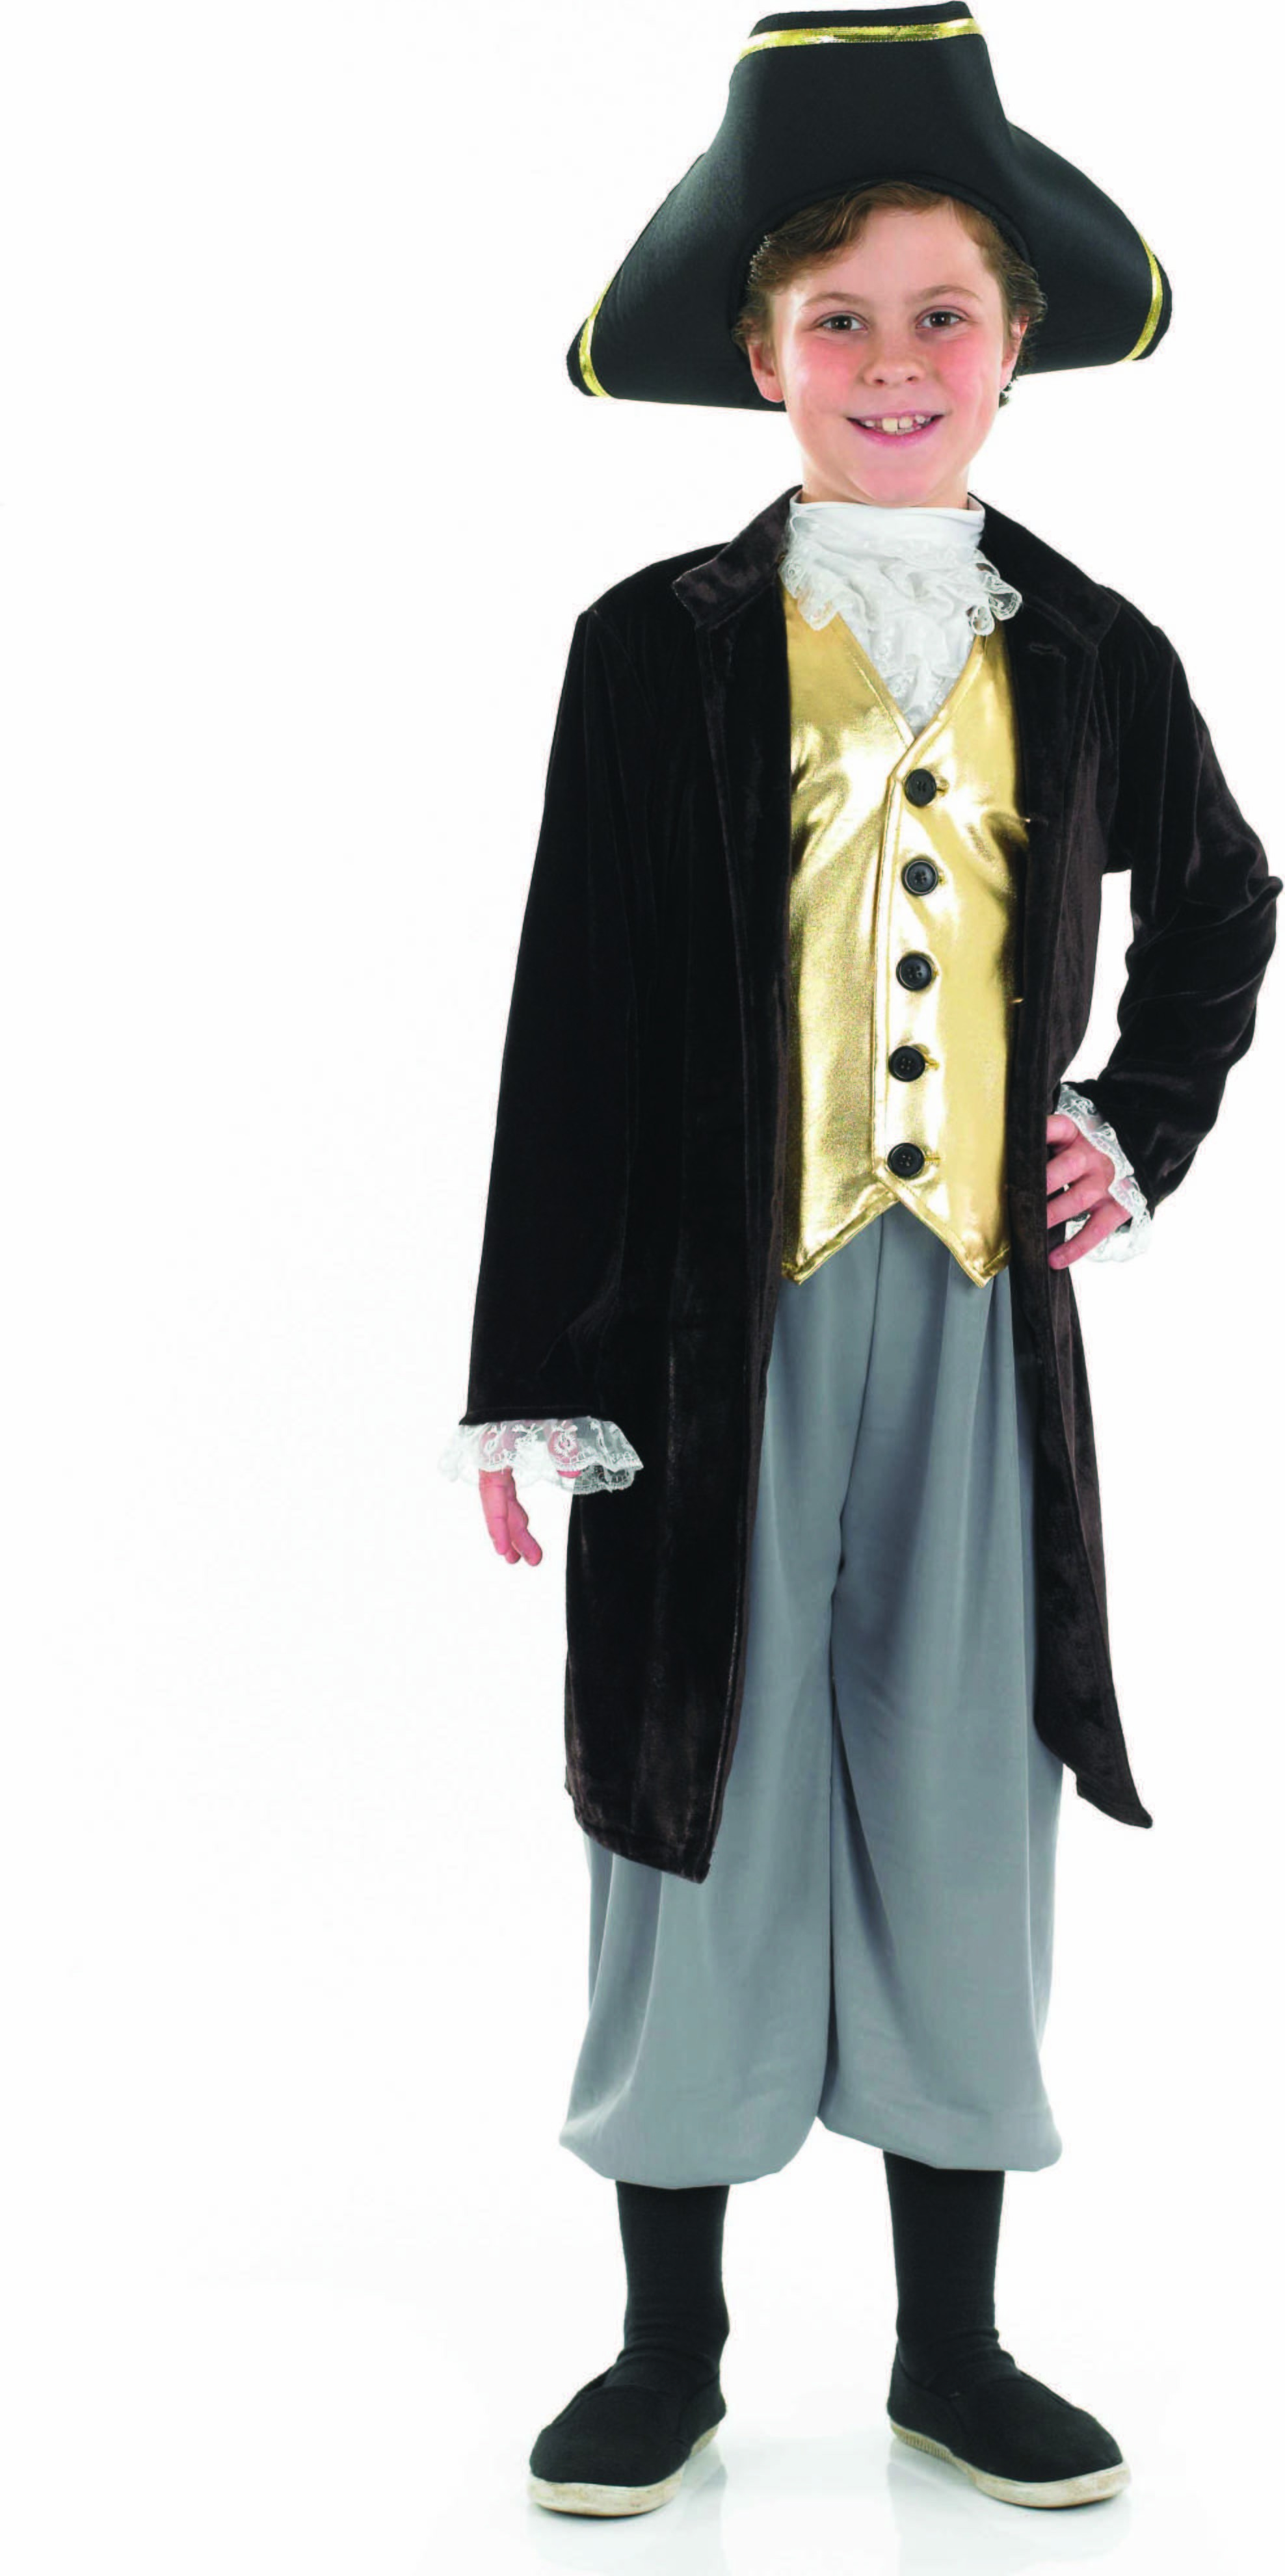 Boys Young Gentleman Period Outfit - (Black, Gold)